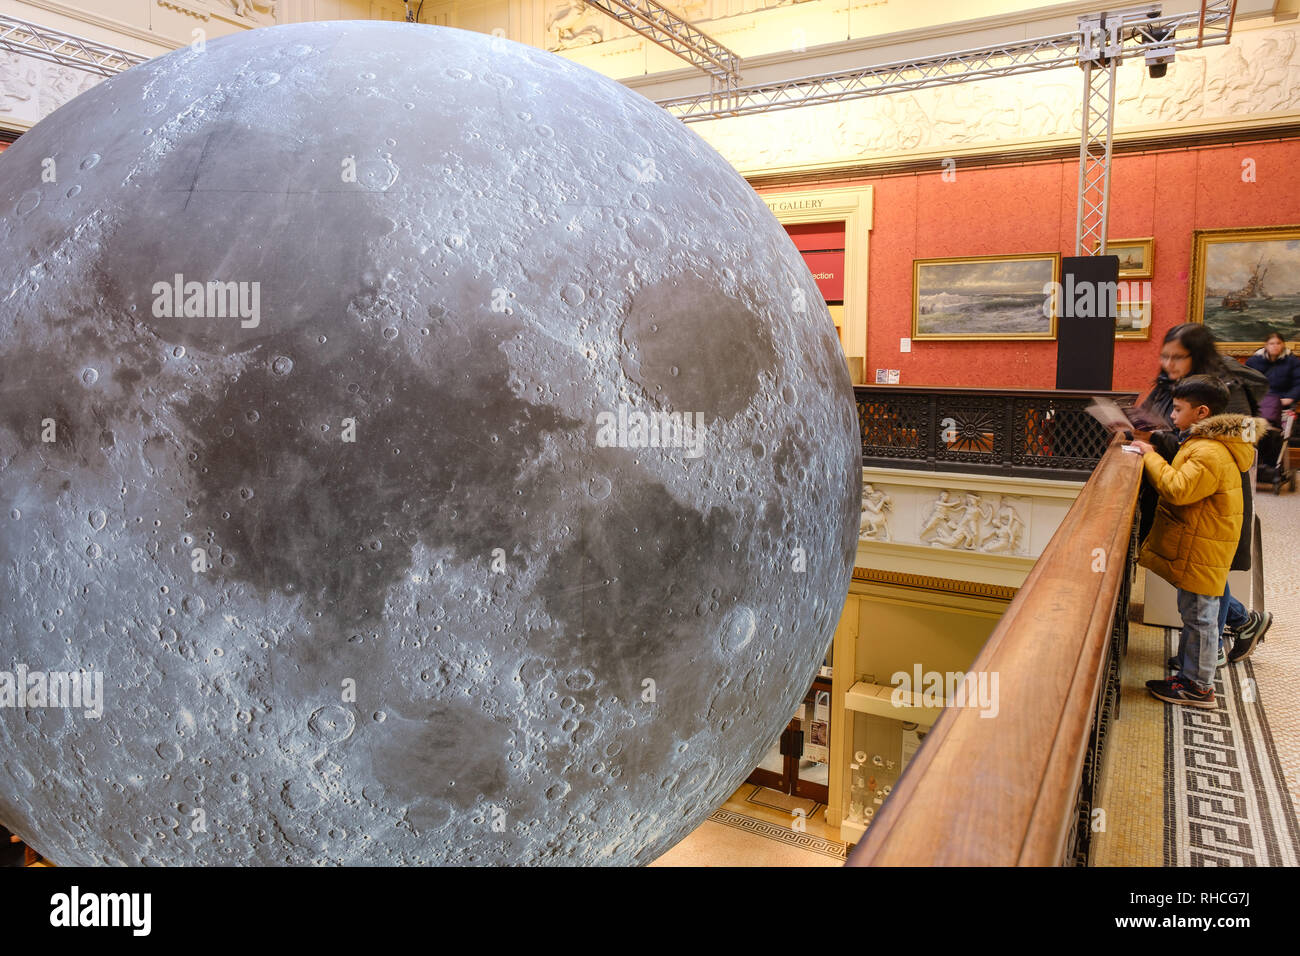 Preston UK, 2nd February 2019. The Harris Museum and Library in Preston opened its doors to the 'Museum of the Moon' exhibition today. British installation artist Luke Jerram's 23-foot high, three dimensional moon model is suspended in the centre of the Grade 1 listed building. Visitors to the exhibition will also hear music composed by BAFTA and Ivor Novello award winning composer Dan Jones. The exhibition runs until Sunday 24th February. Credit: Paul Melling/Alamy Live News - Stock Image